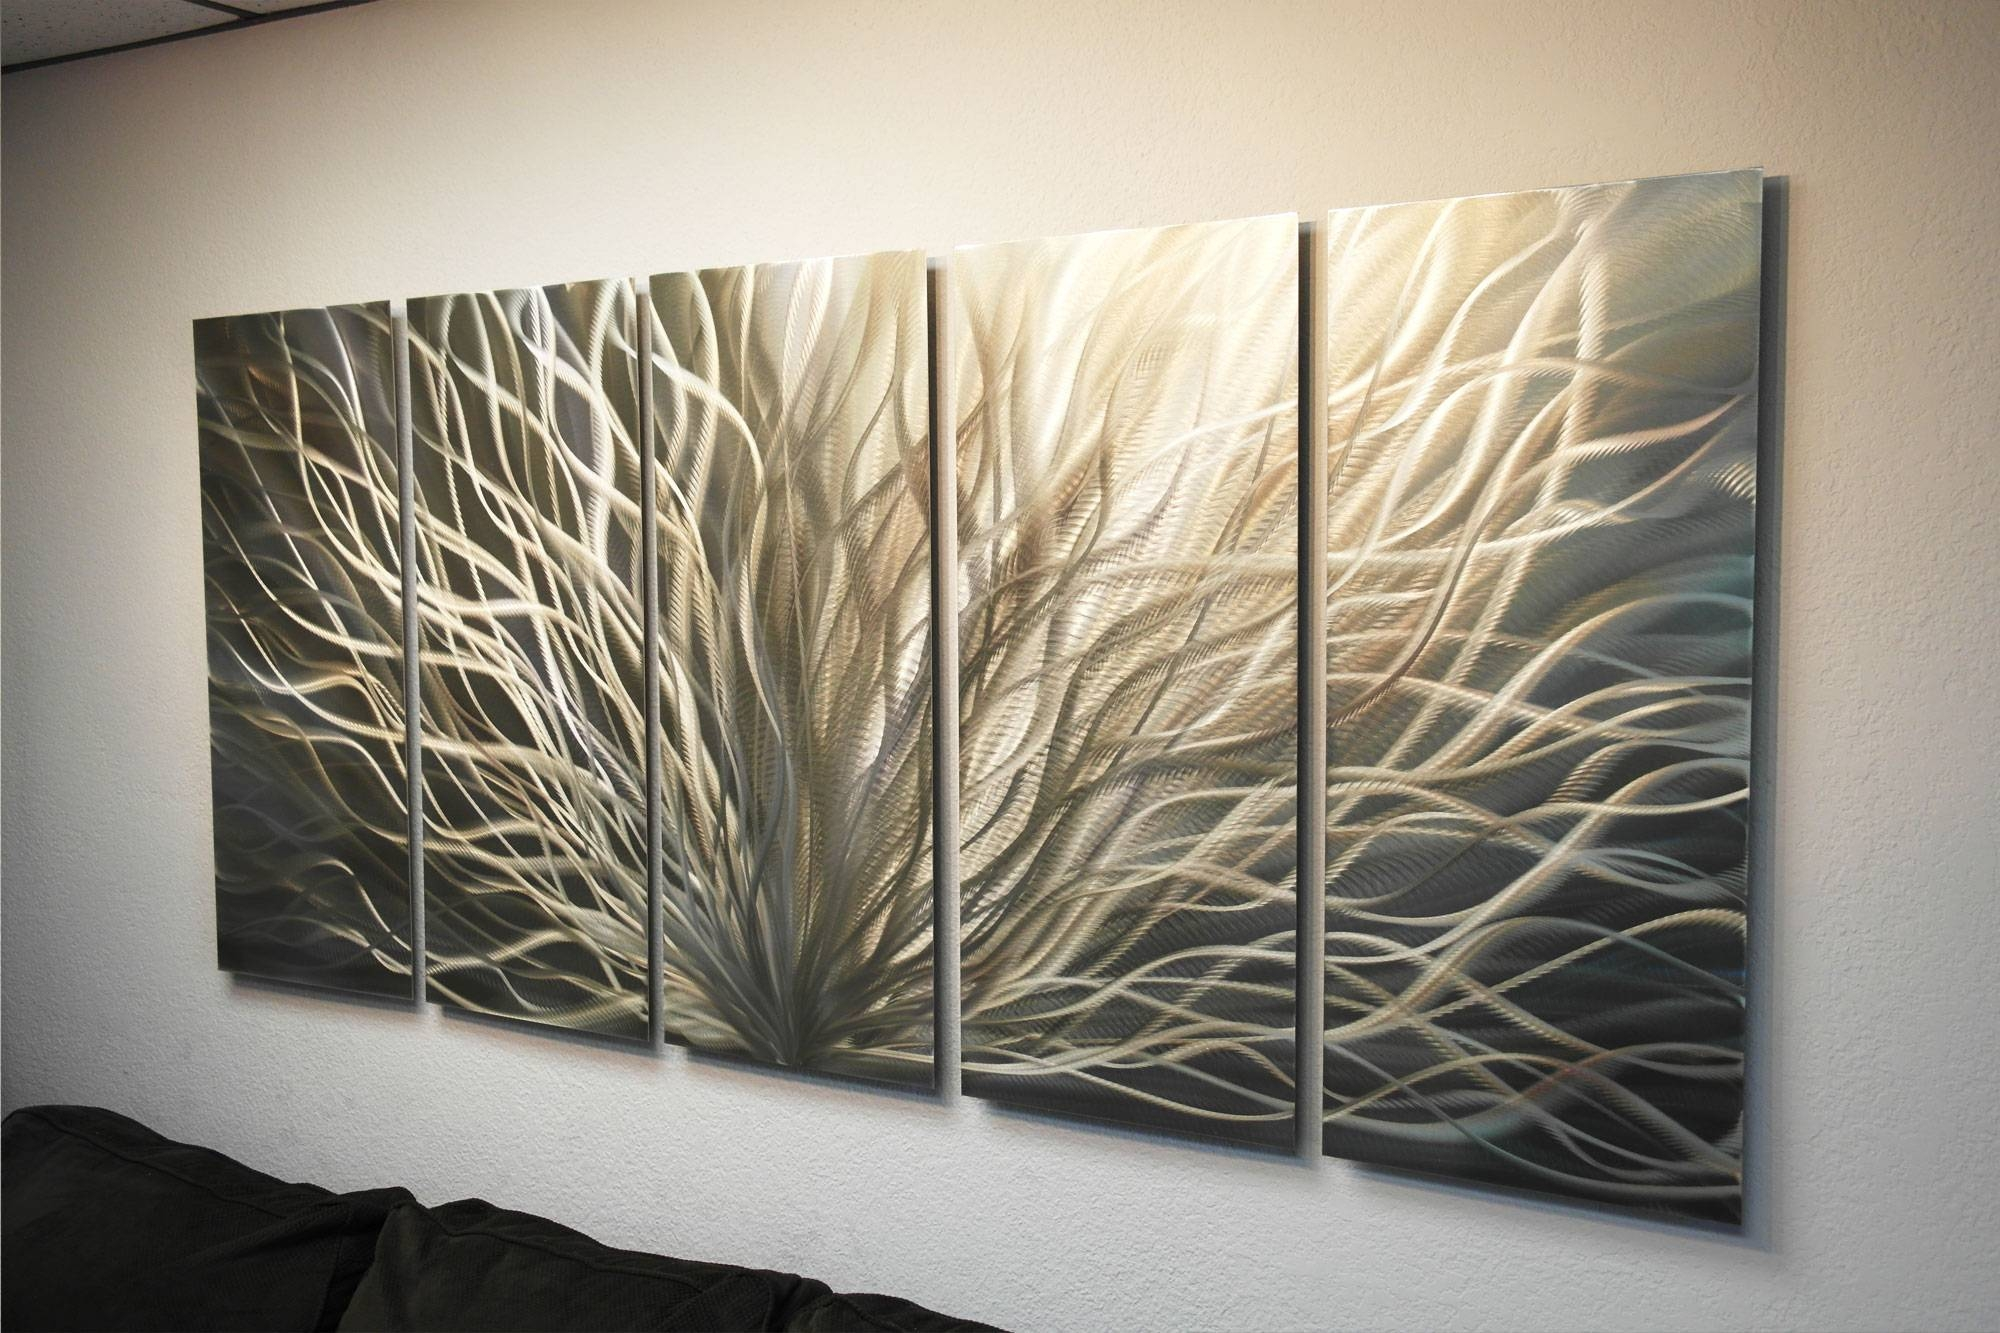 Radiance Gold Silver 36X79 – Metal Wall Art Abstract Sculpture For 2017 Silver And Gold Wall Art (Gallery 4 of 15)